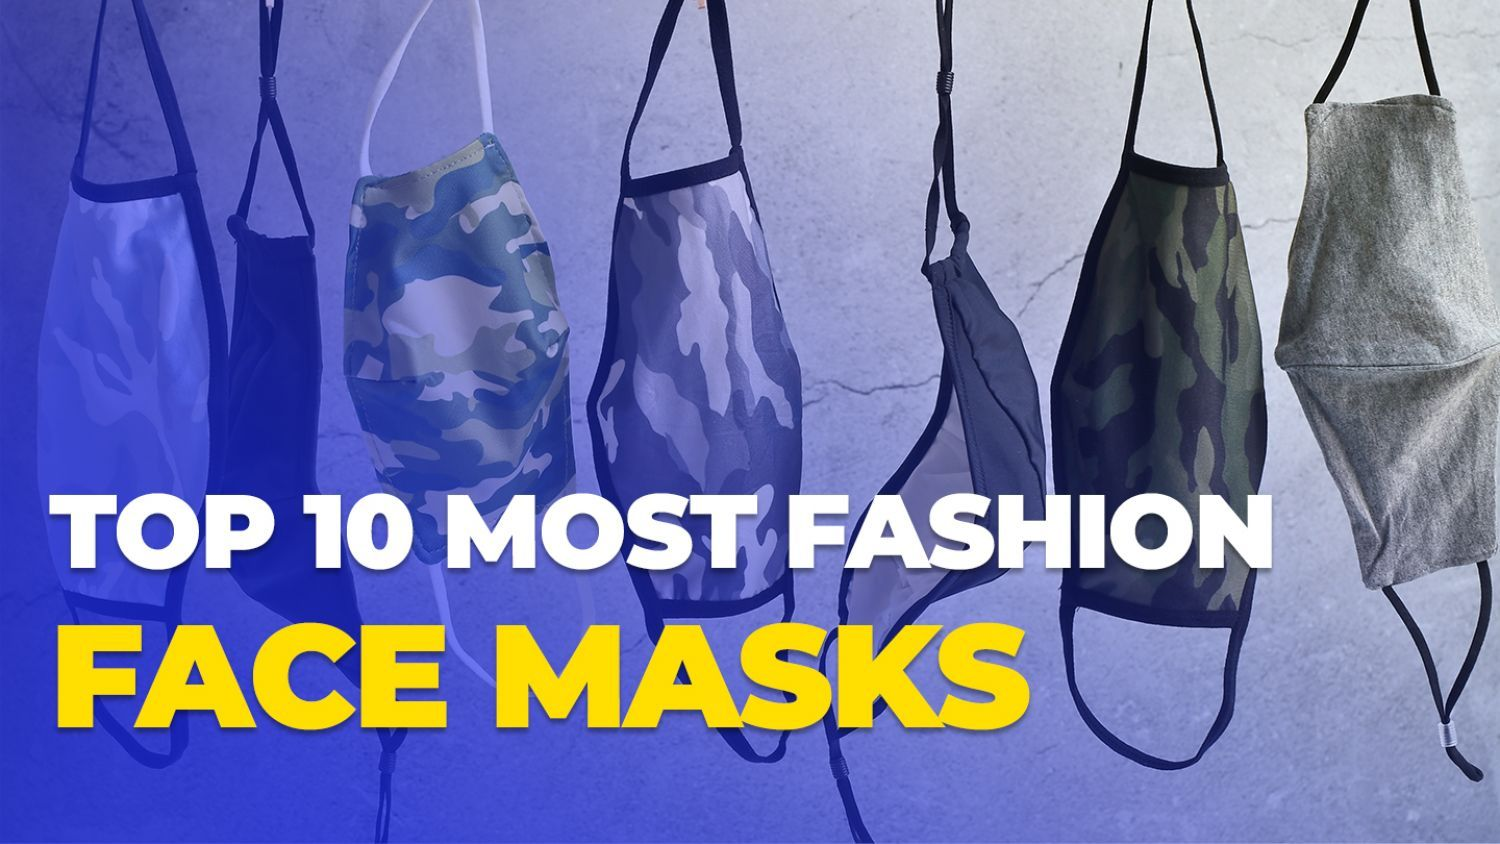 TOP 10 MOST TRENDY FACE MASKS